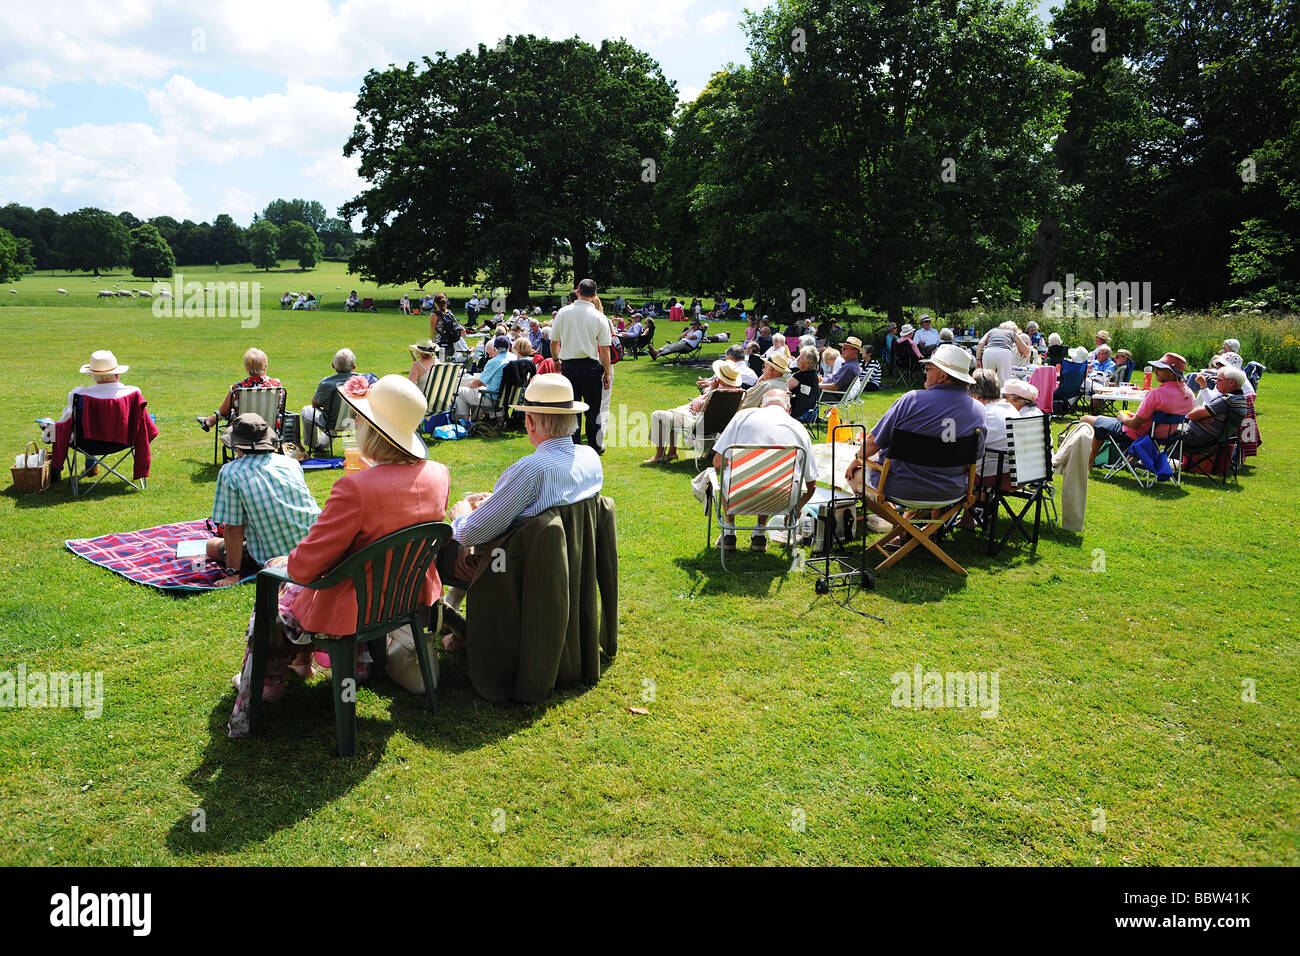 Crowd audience with picnic on a lawn in West Country England in the summer sun - Stock Image